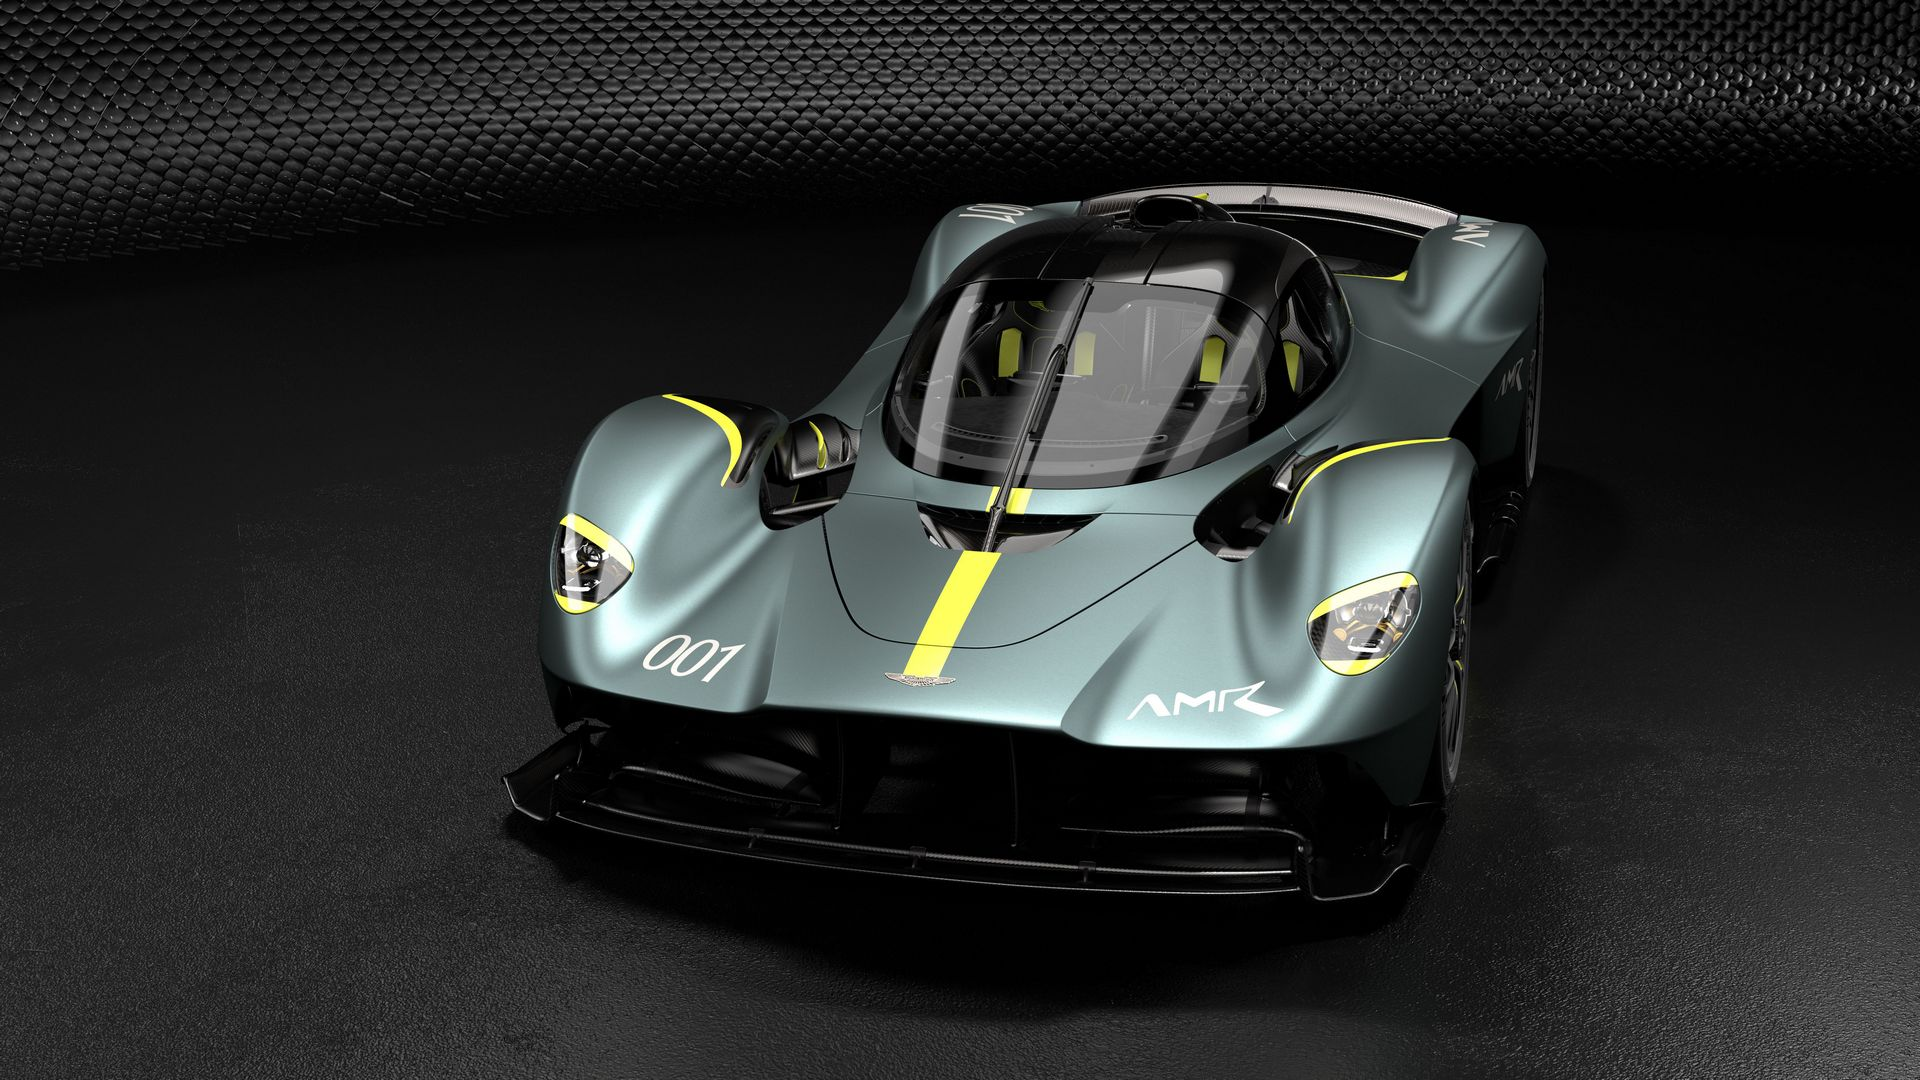 2adccad8-aston-martin-valkyrie-amr-track-performance-pack-1